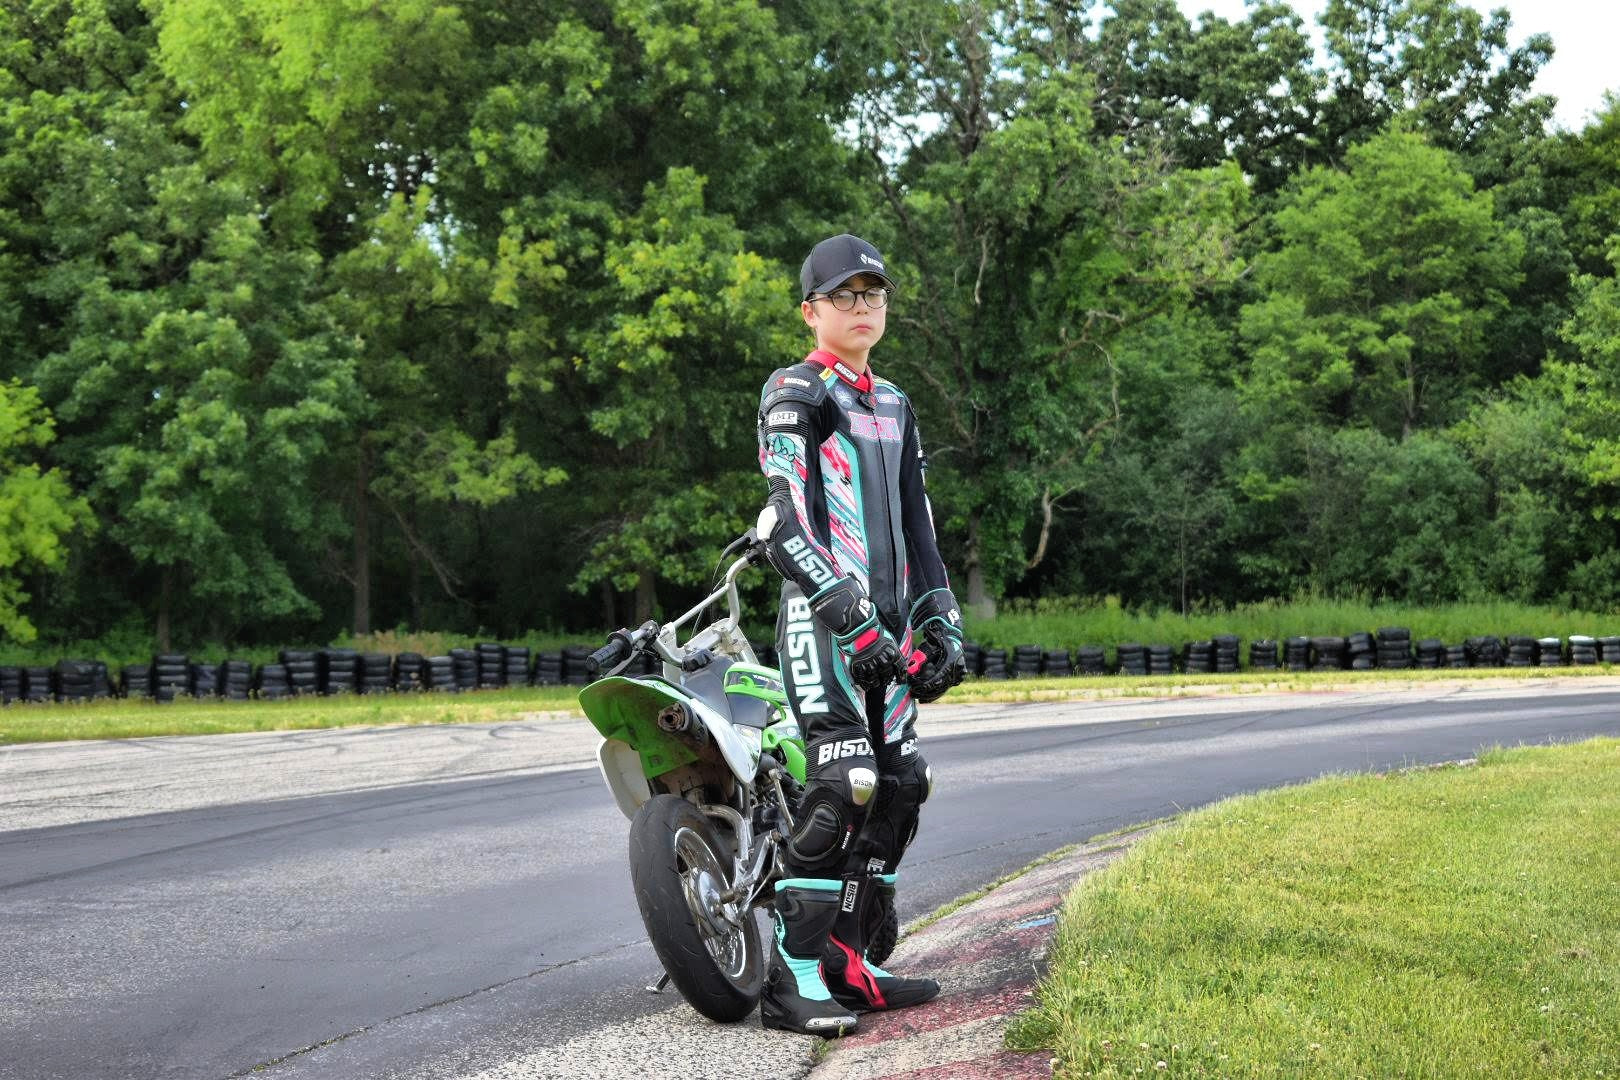 Bison Track Thor.1 Youth Custom Motorcycle Racing Suit